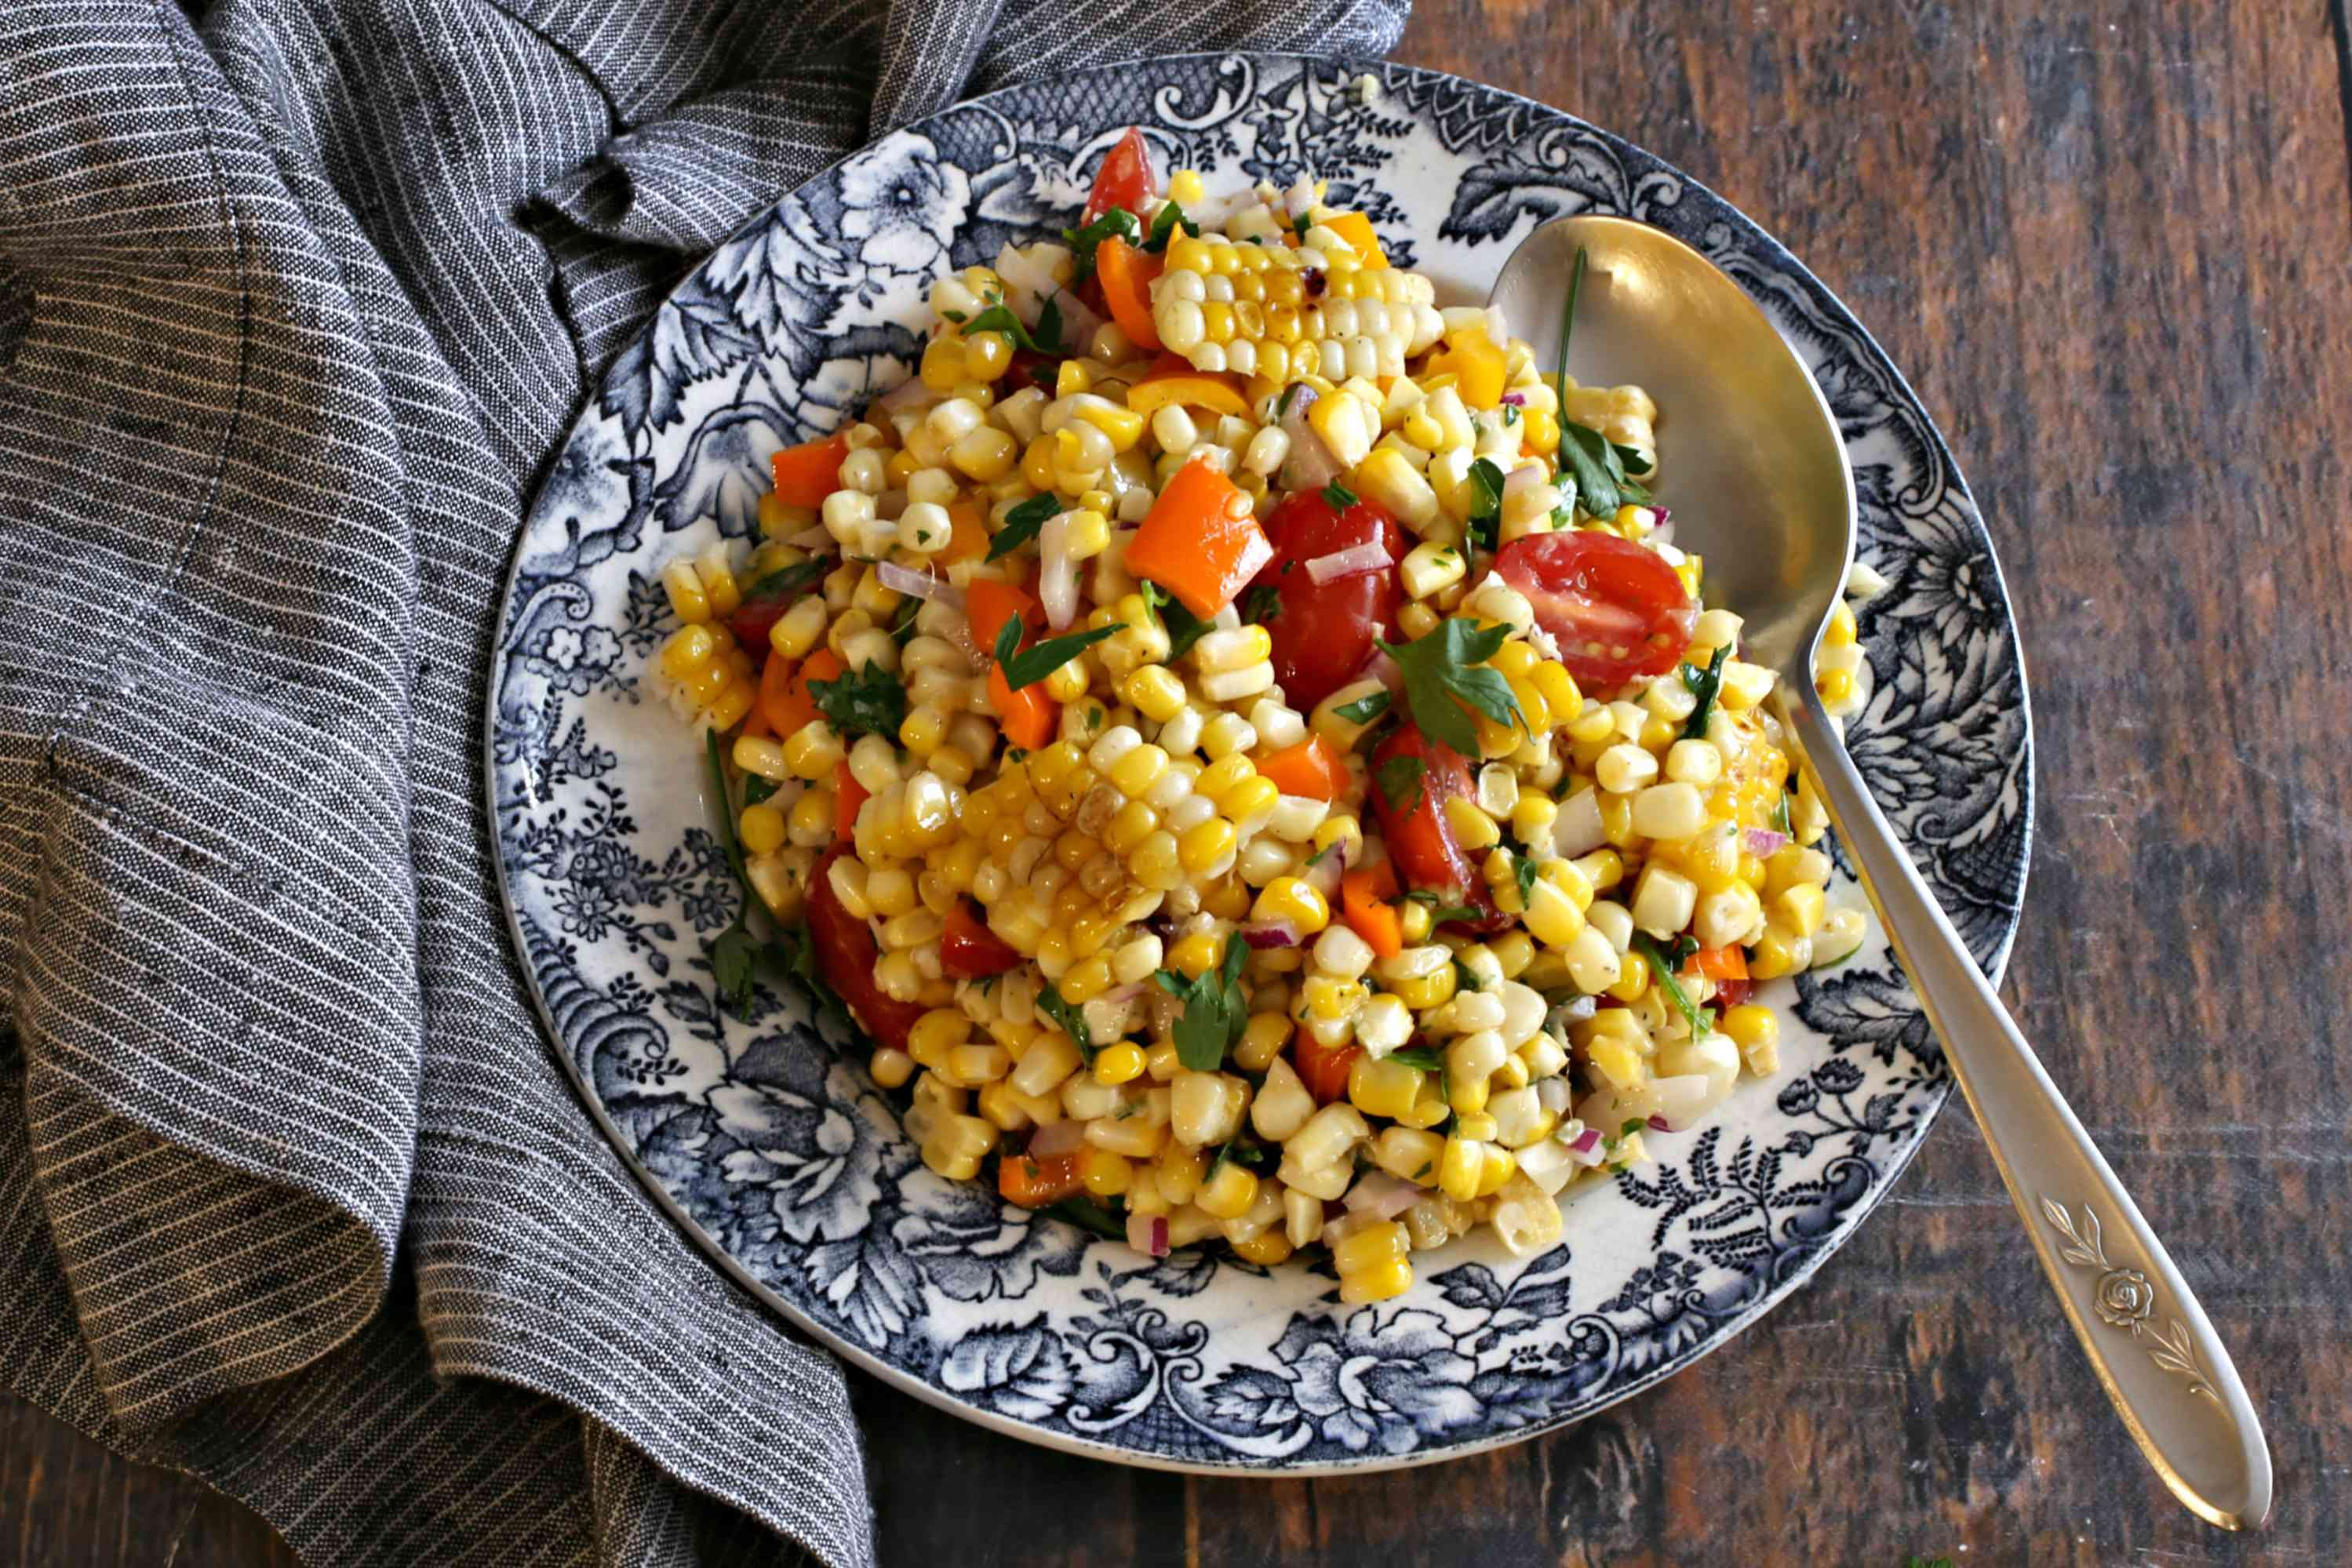 Grilled corn salad in a serving bowl with a spoon